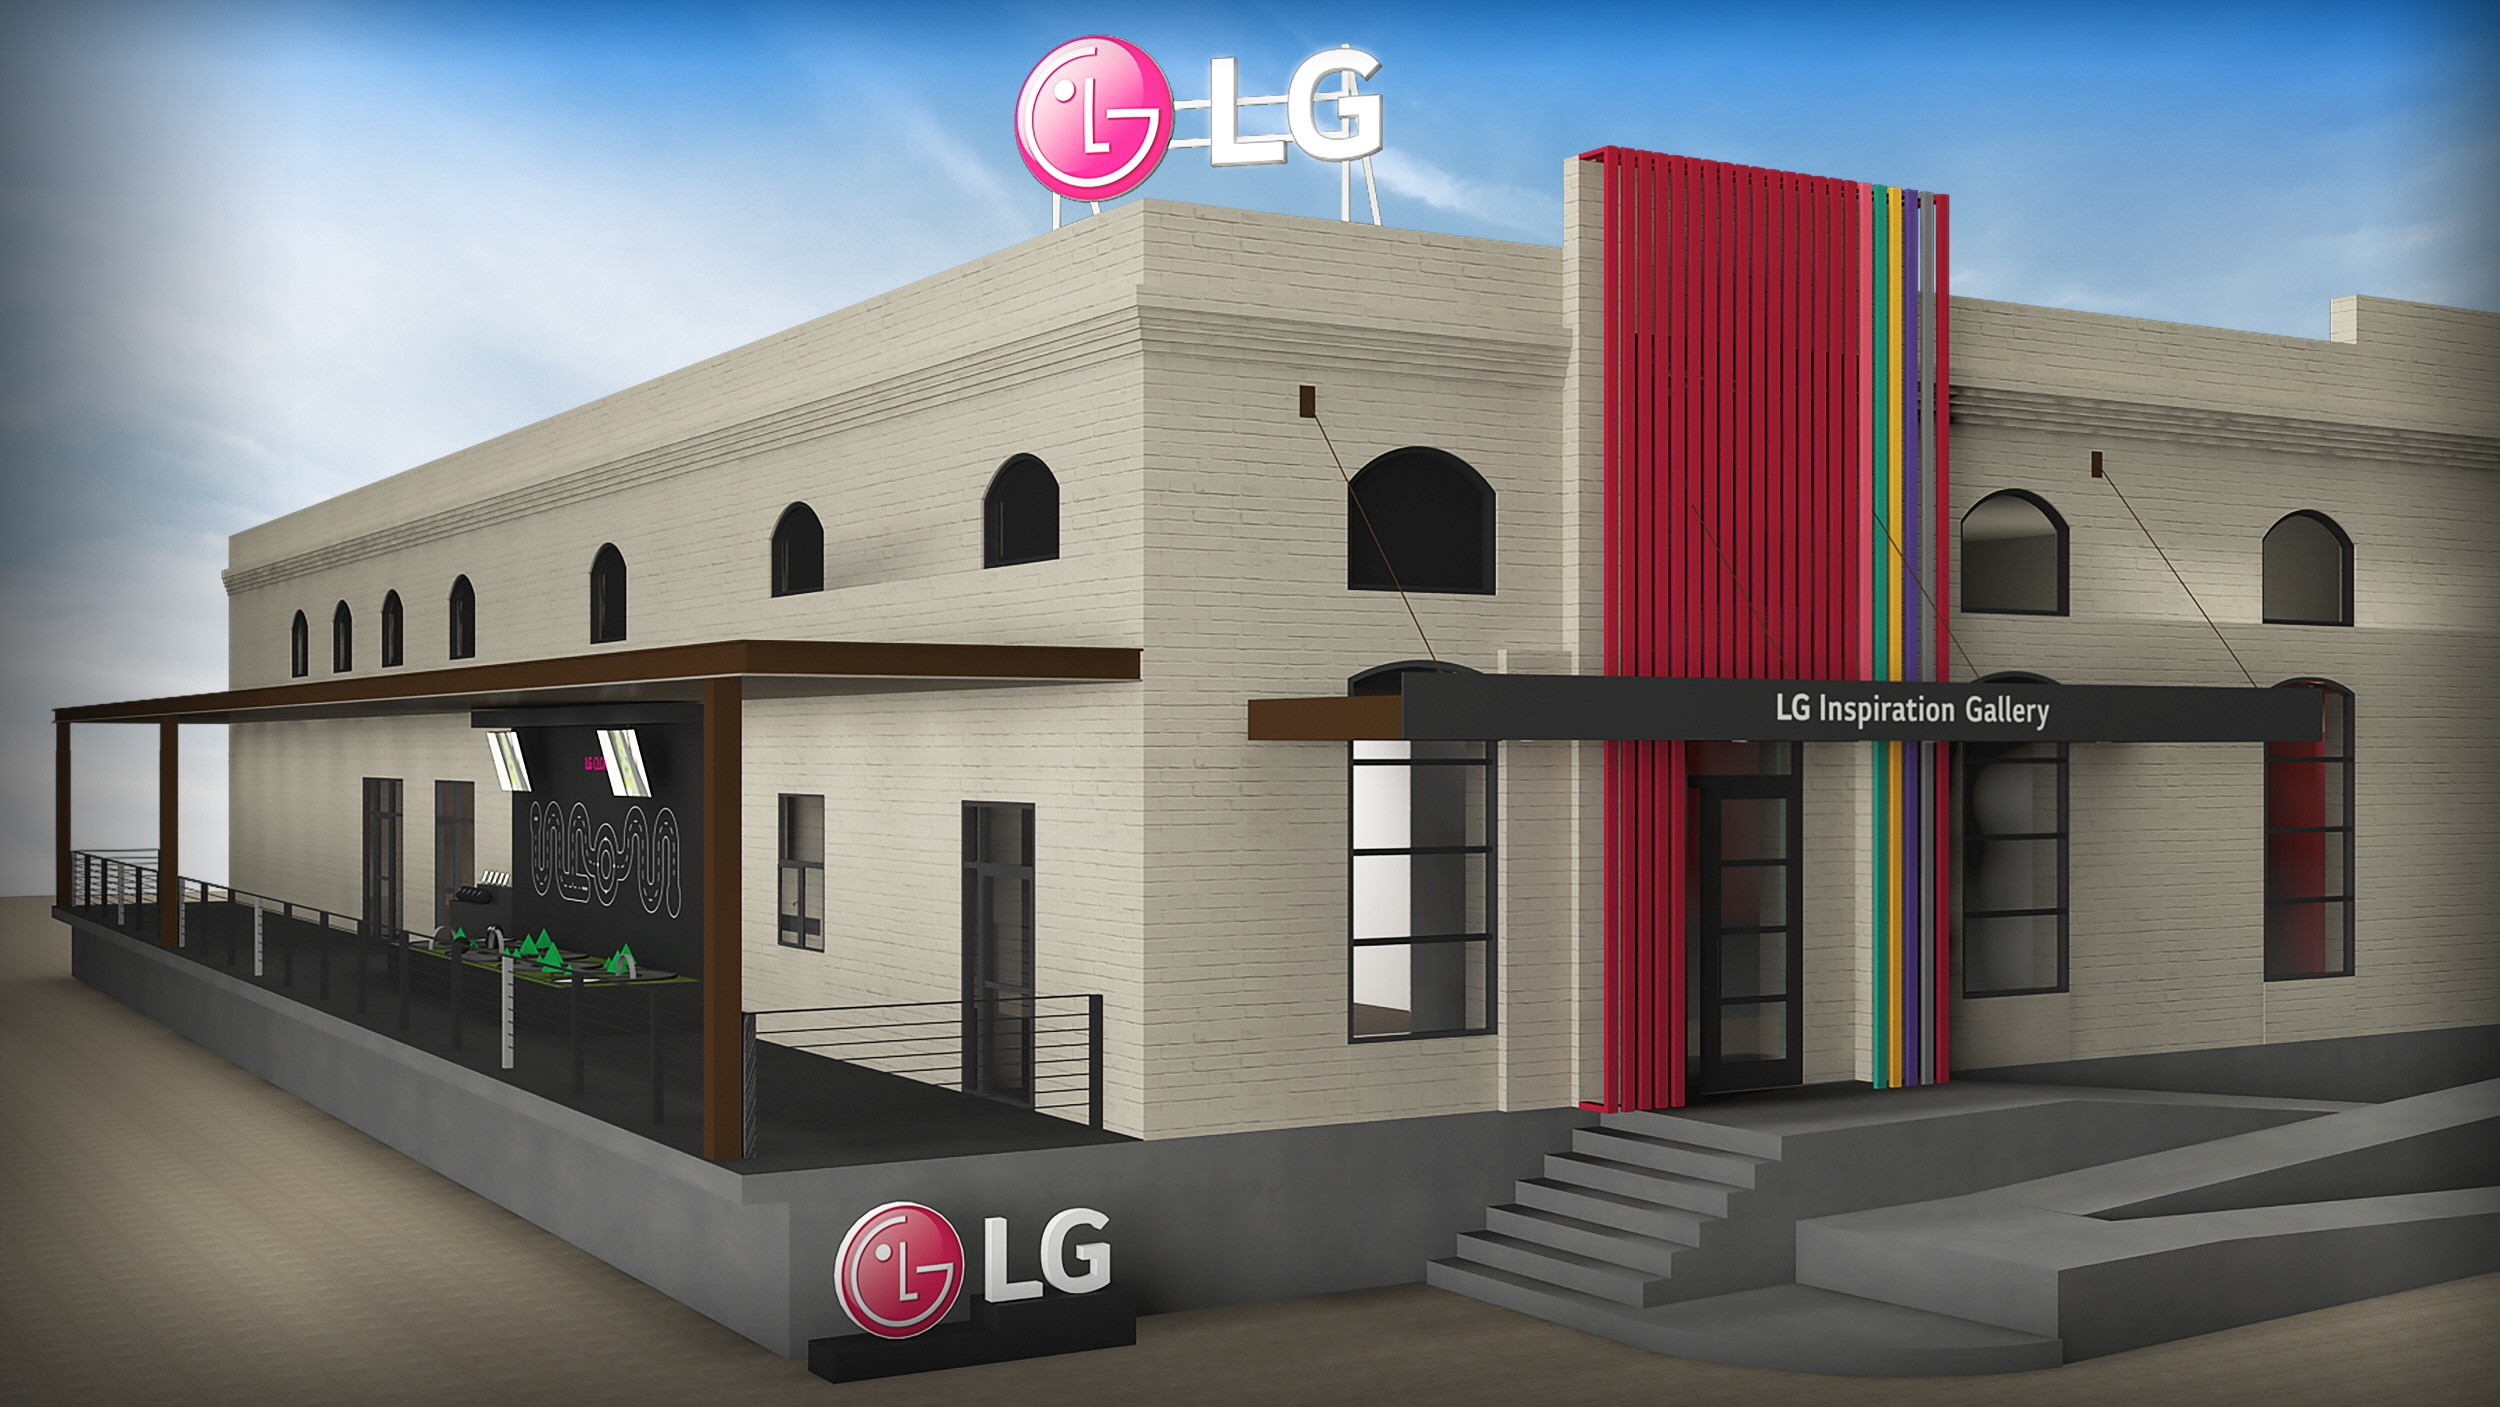 Image of the LG Inspiration Gallery at South by Southwest® (SXSW®) Texas.